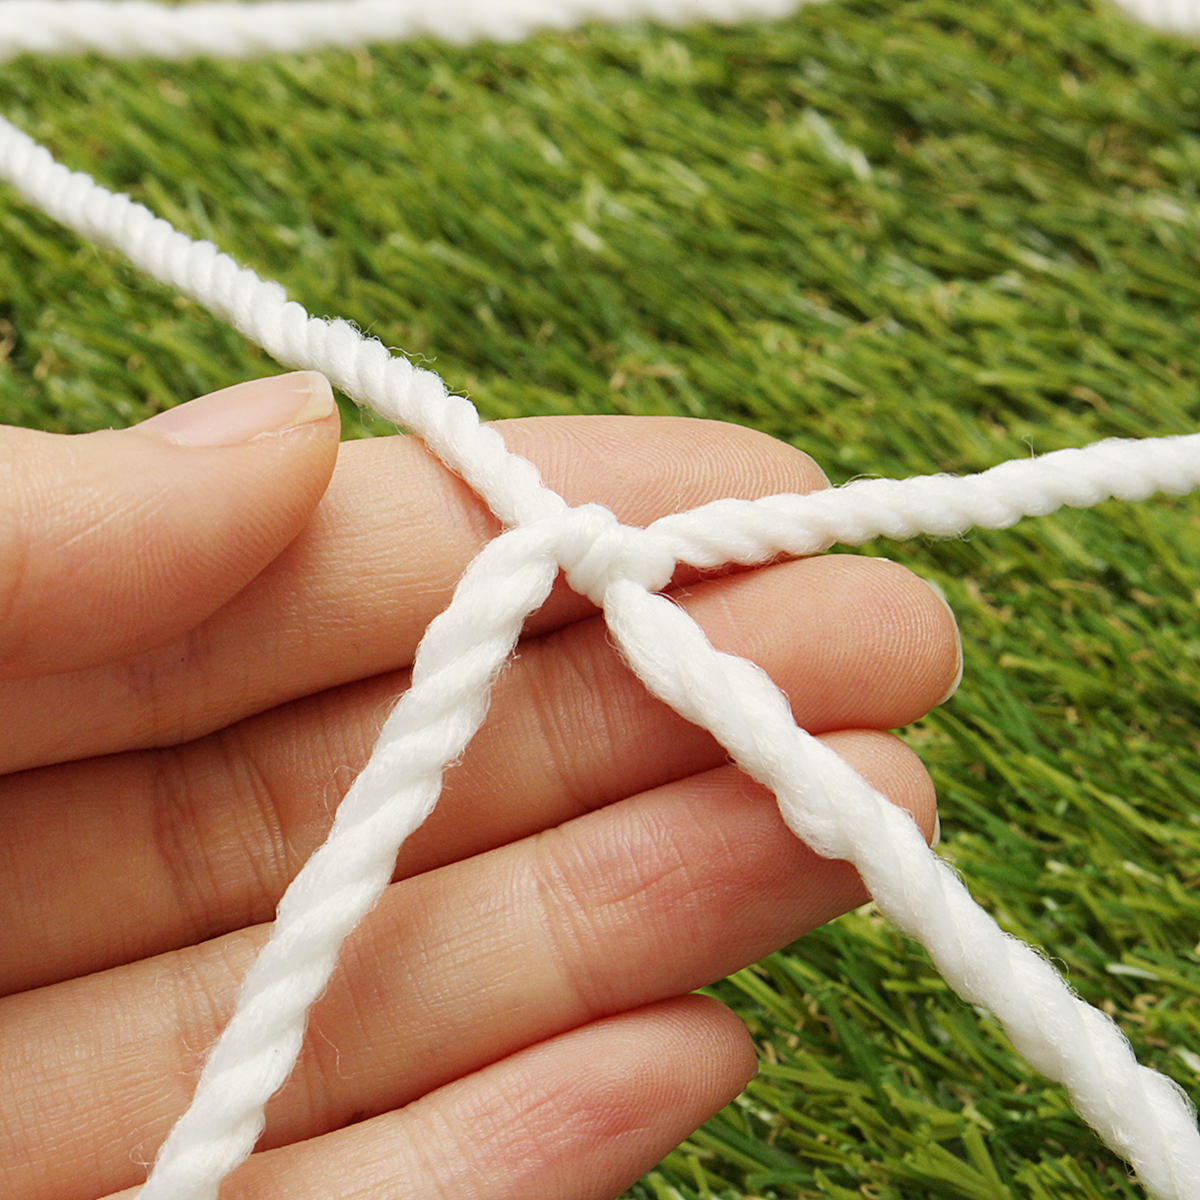 Football Soccer Goal Post Net Training Match Replace Outdoor Full Size Adult Kid - 6